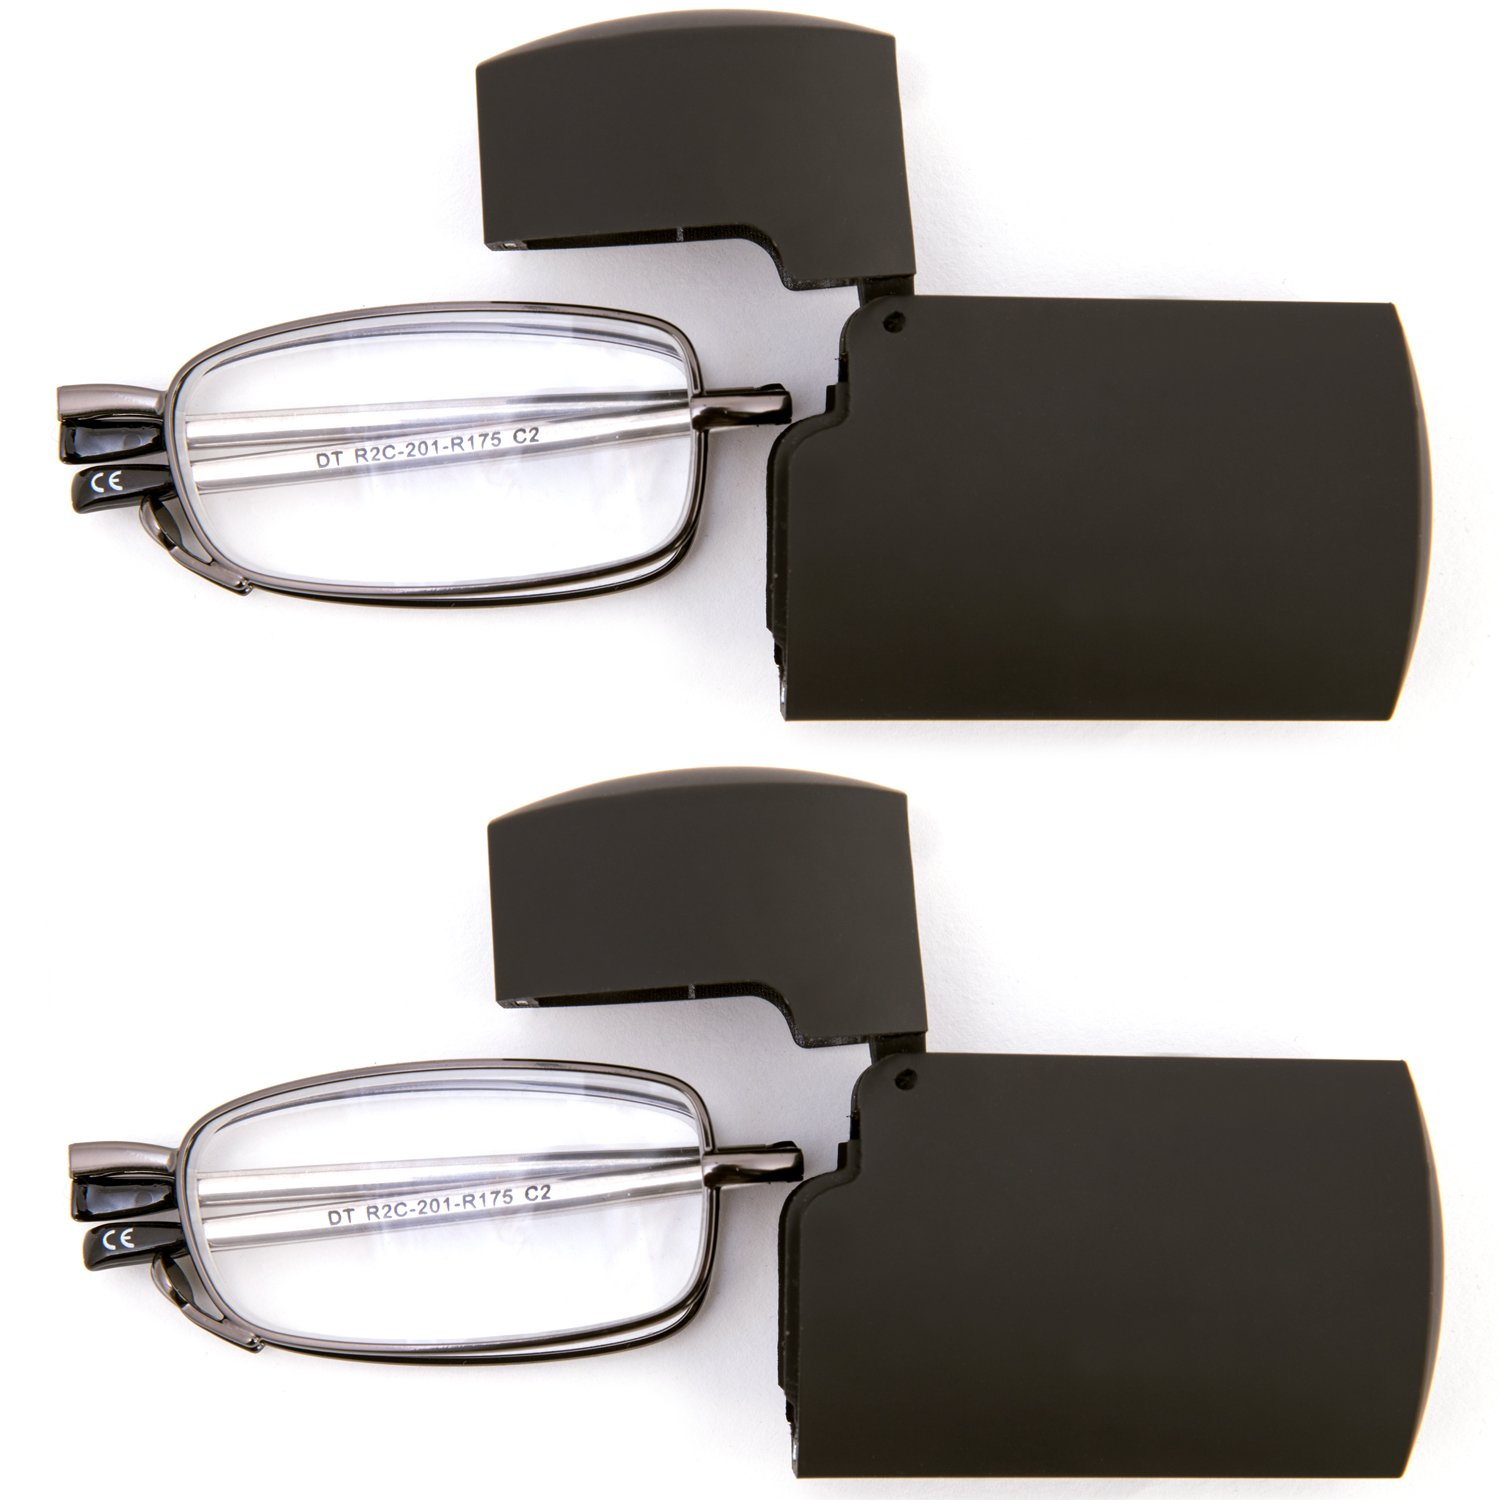 DOUBLETAKE 2 Pack Compact Folding Readers Reading Glasses w Case - 1.50x by DOUBLETAKE (Image #3)